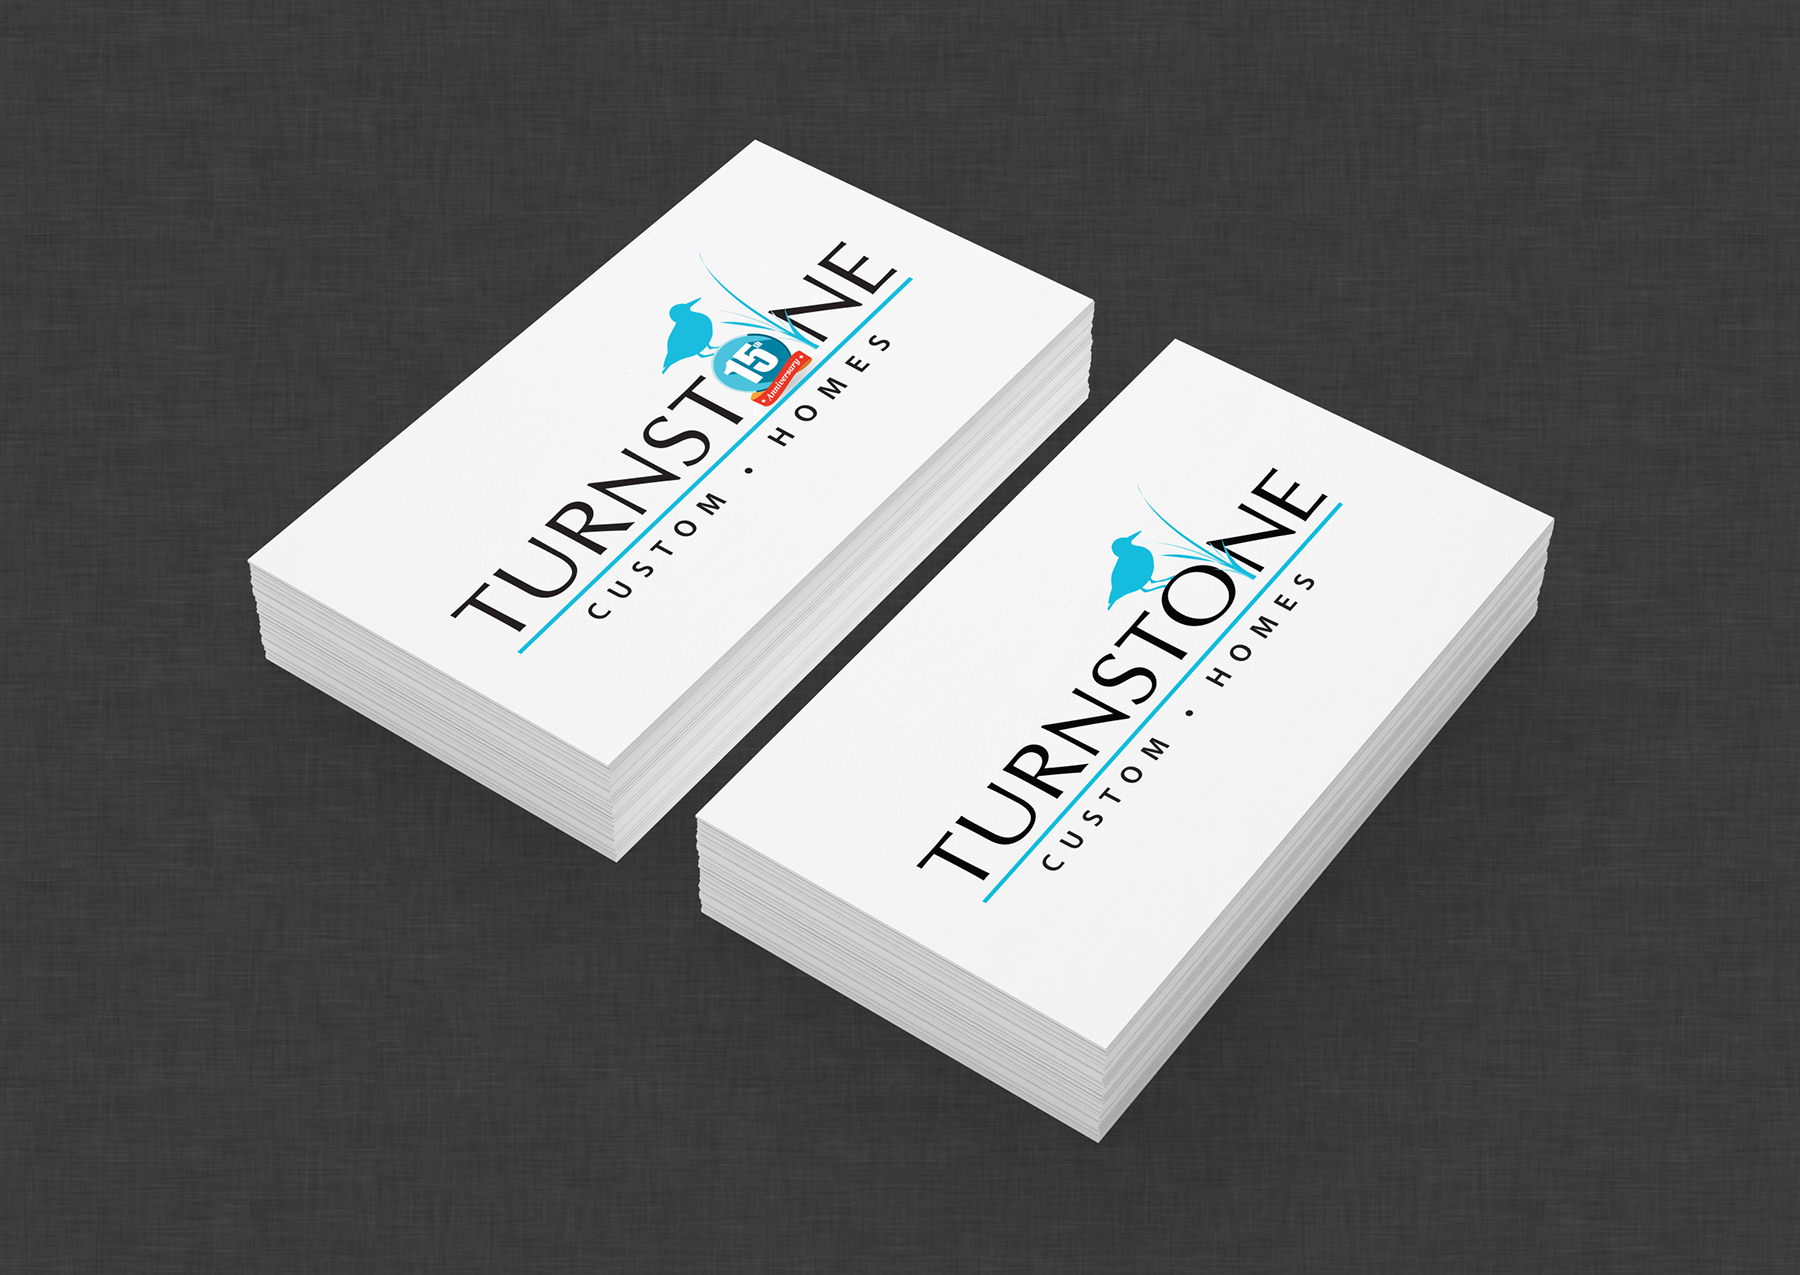 Turnstone Custom Homes logo iKANDE design